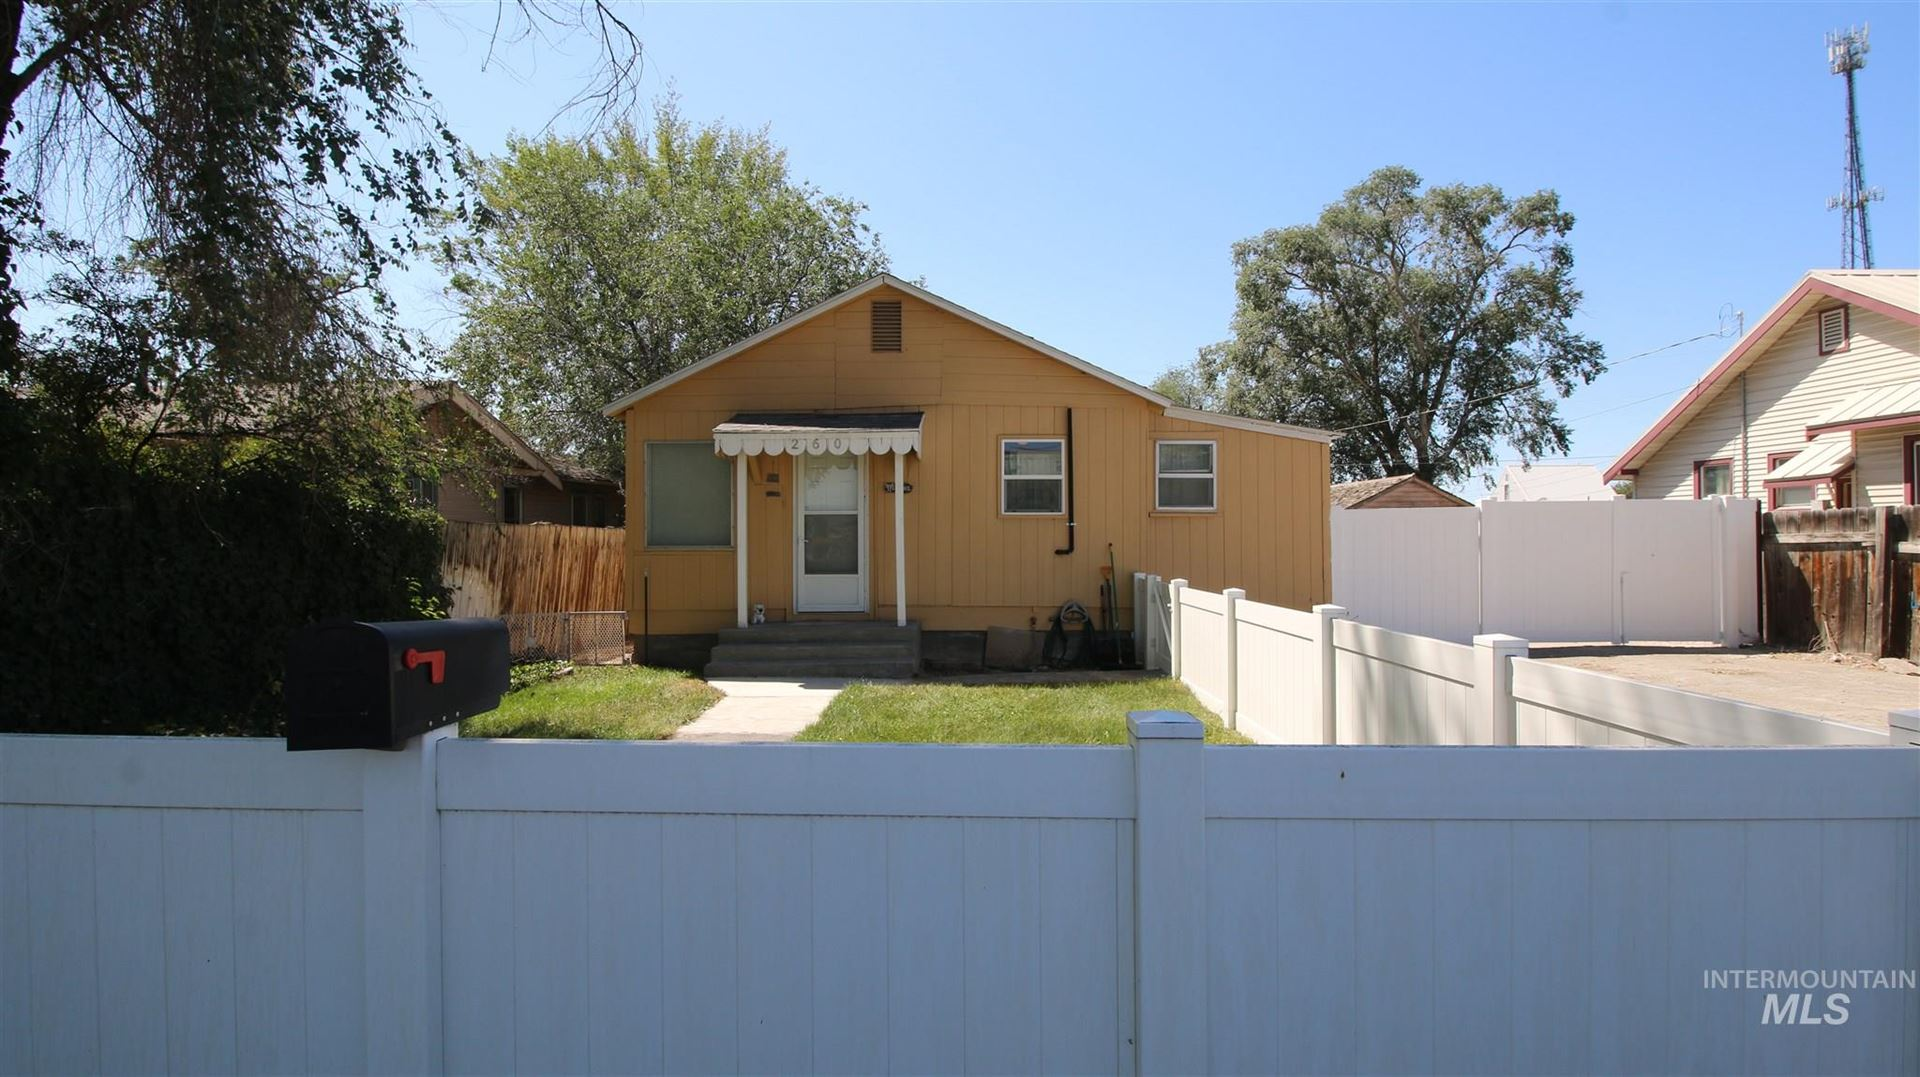 Photo of 260 Blue Lakes Blvd South, Twin Falls, ID 83301 (MLS # 98776646)